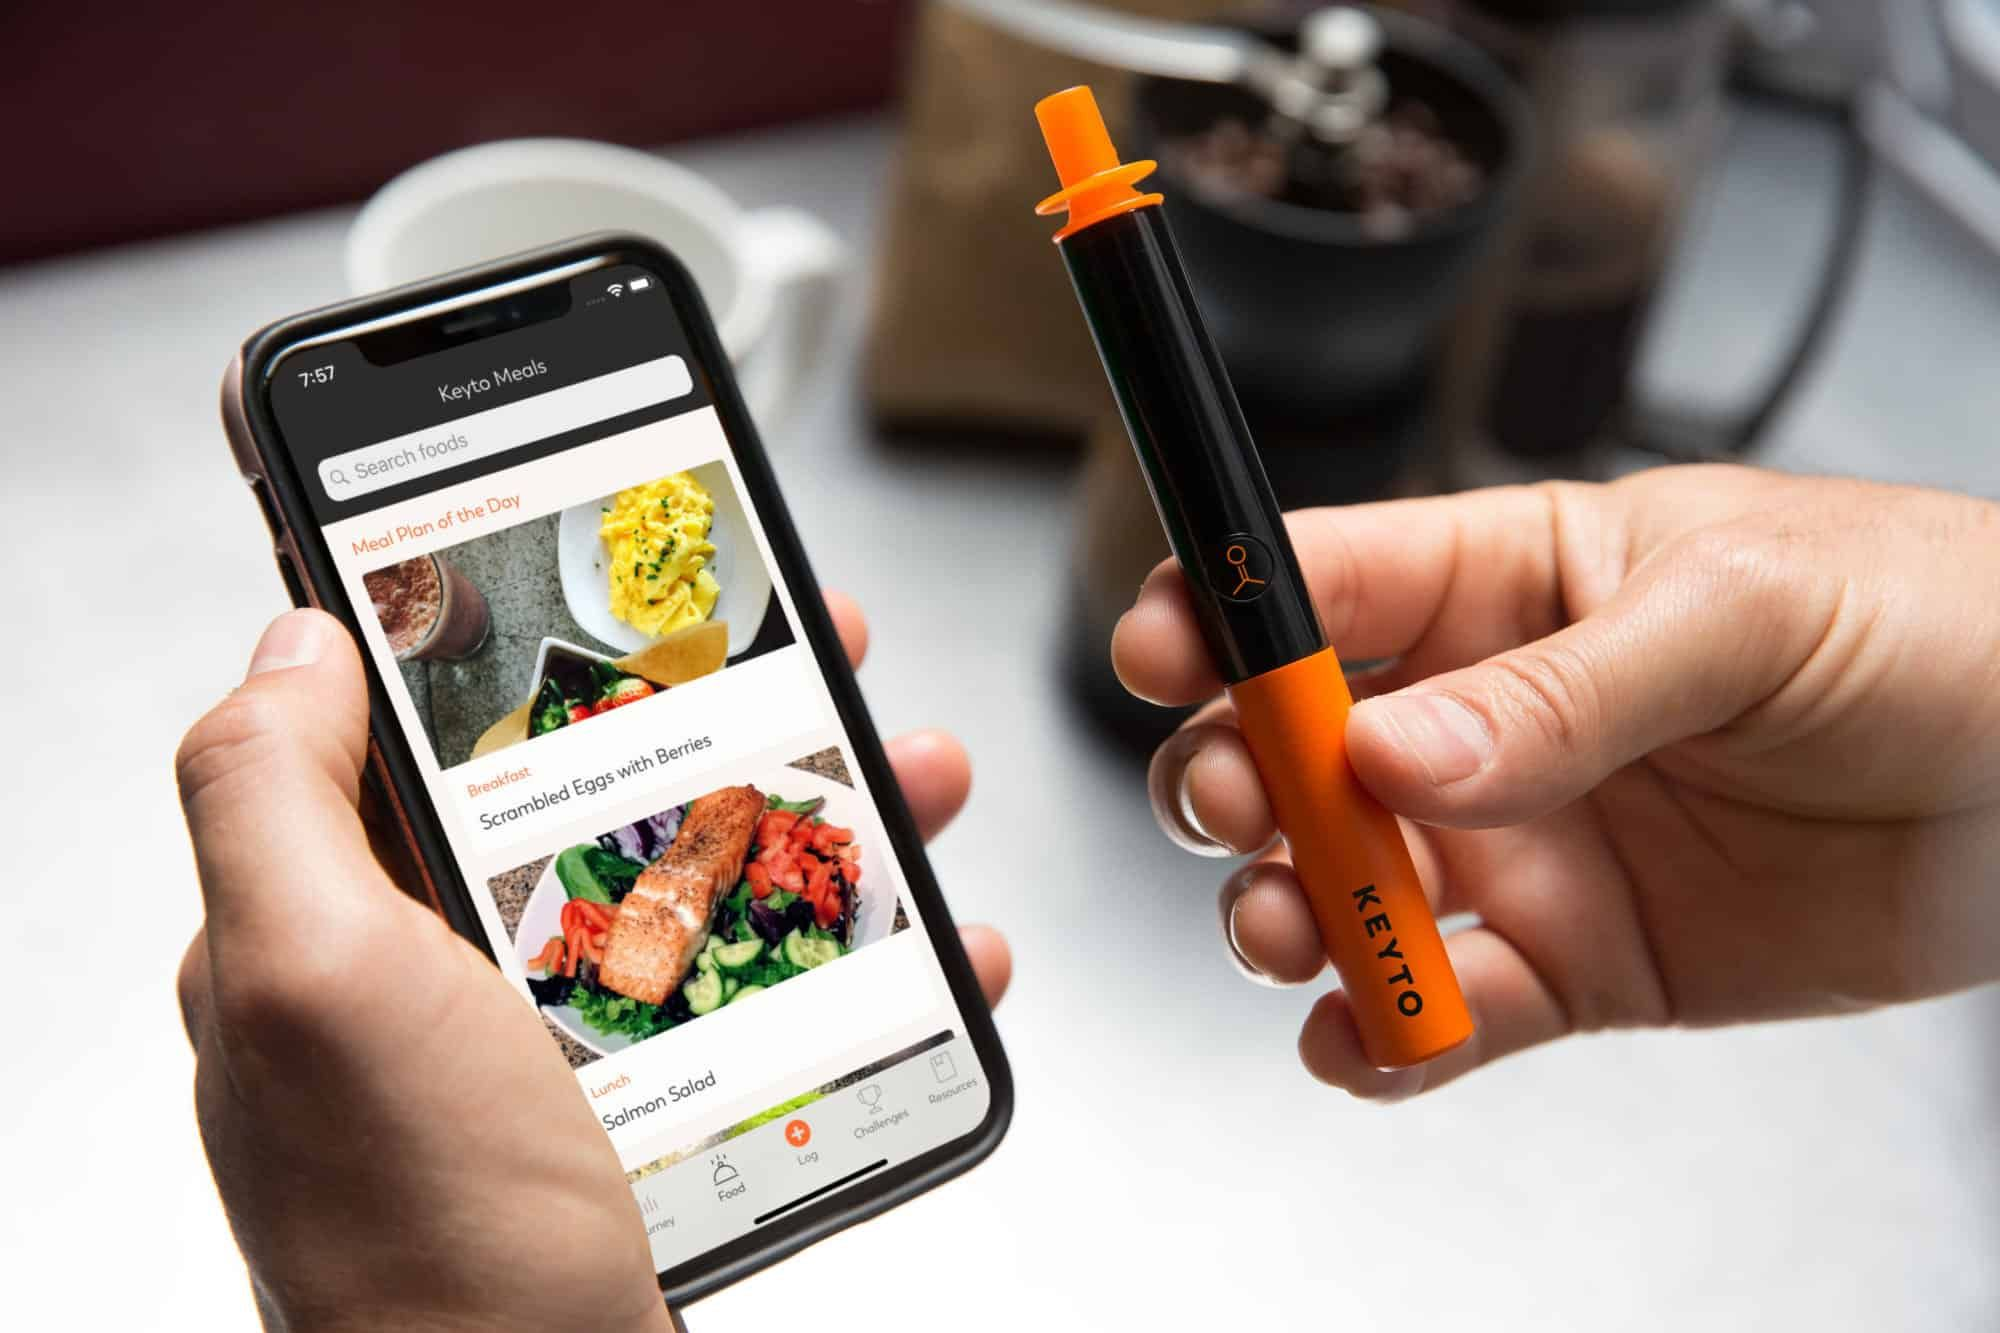 Keyto Breath Analyzer To Keep Your Diet on Track